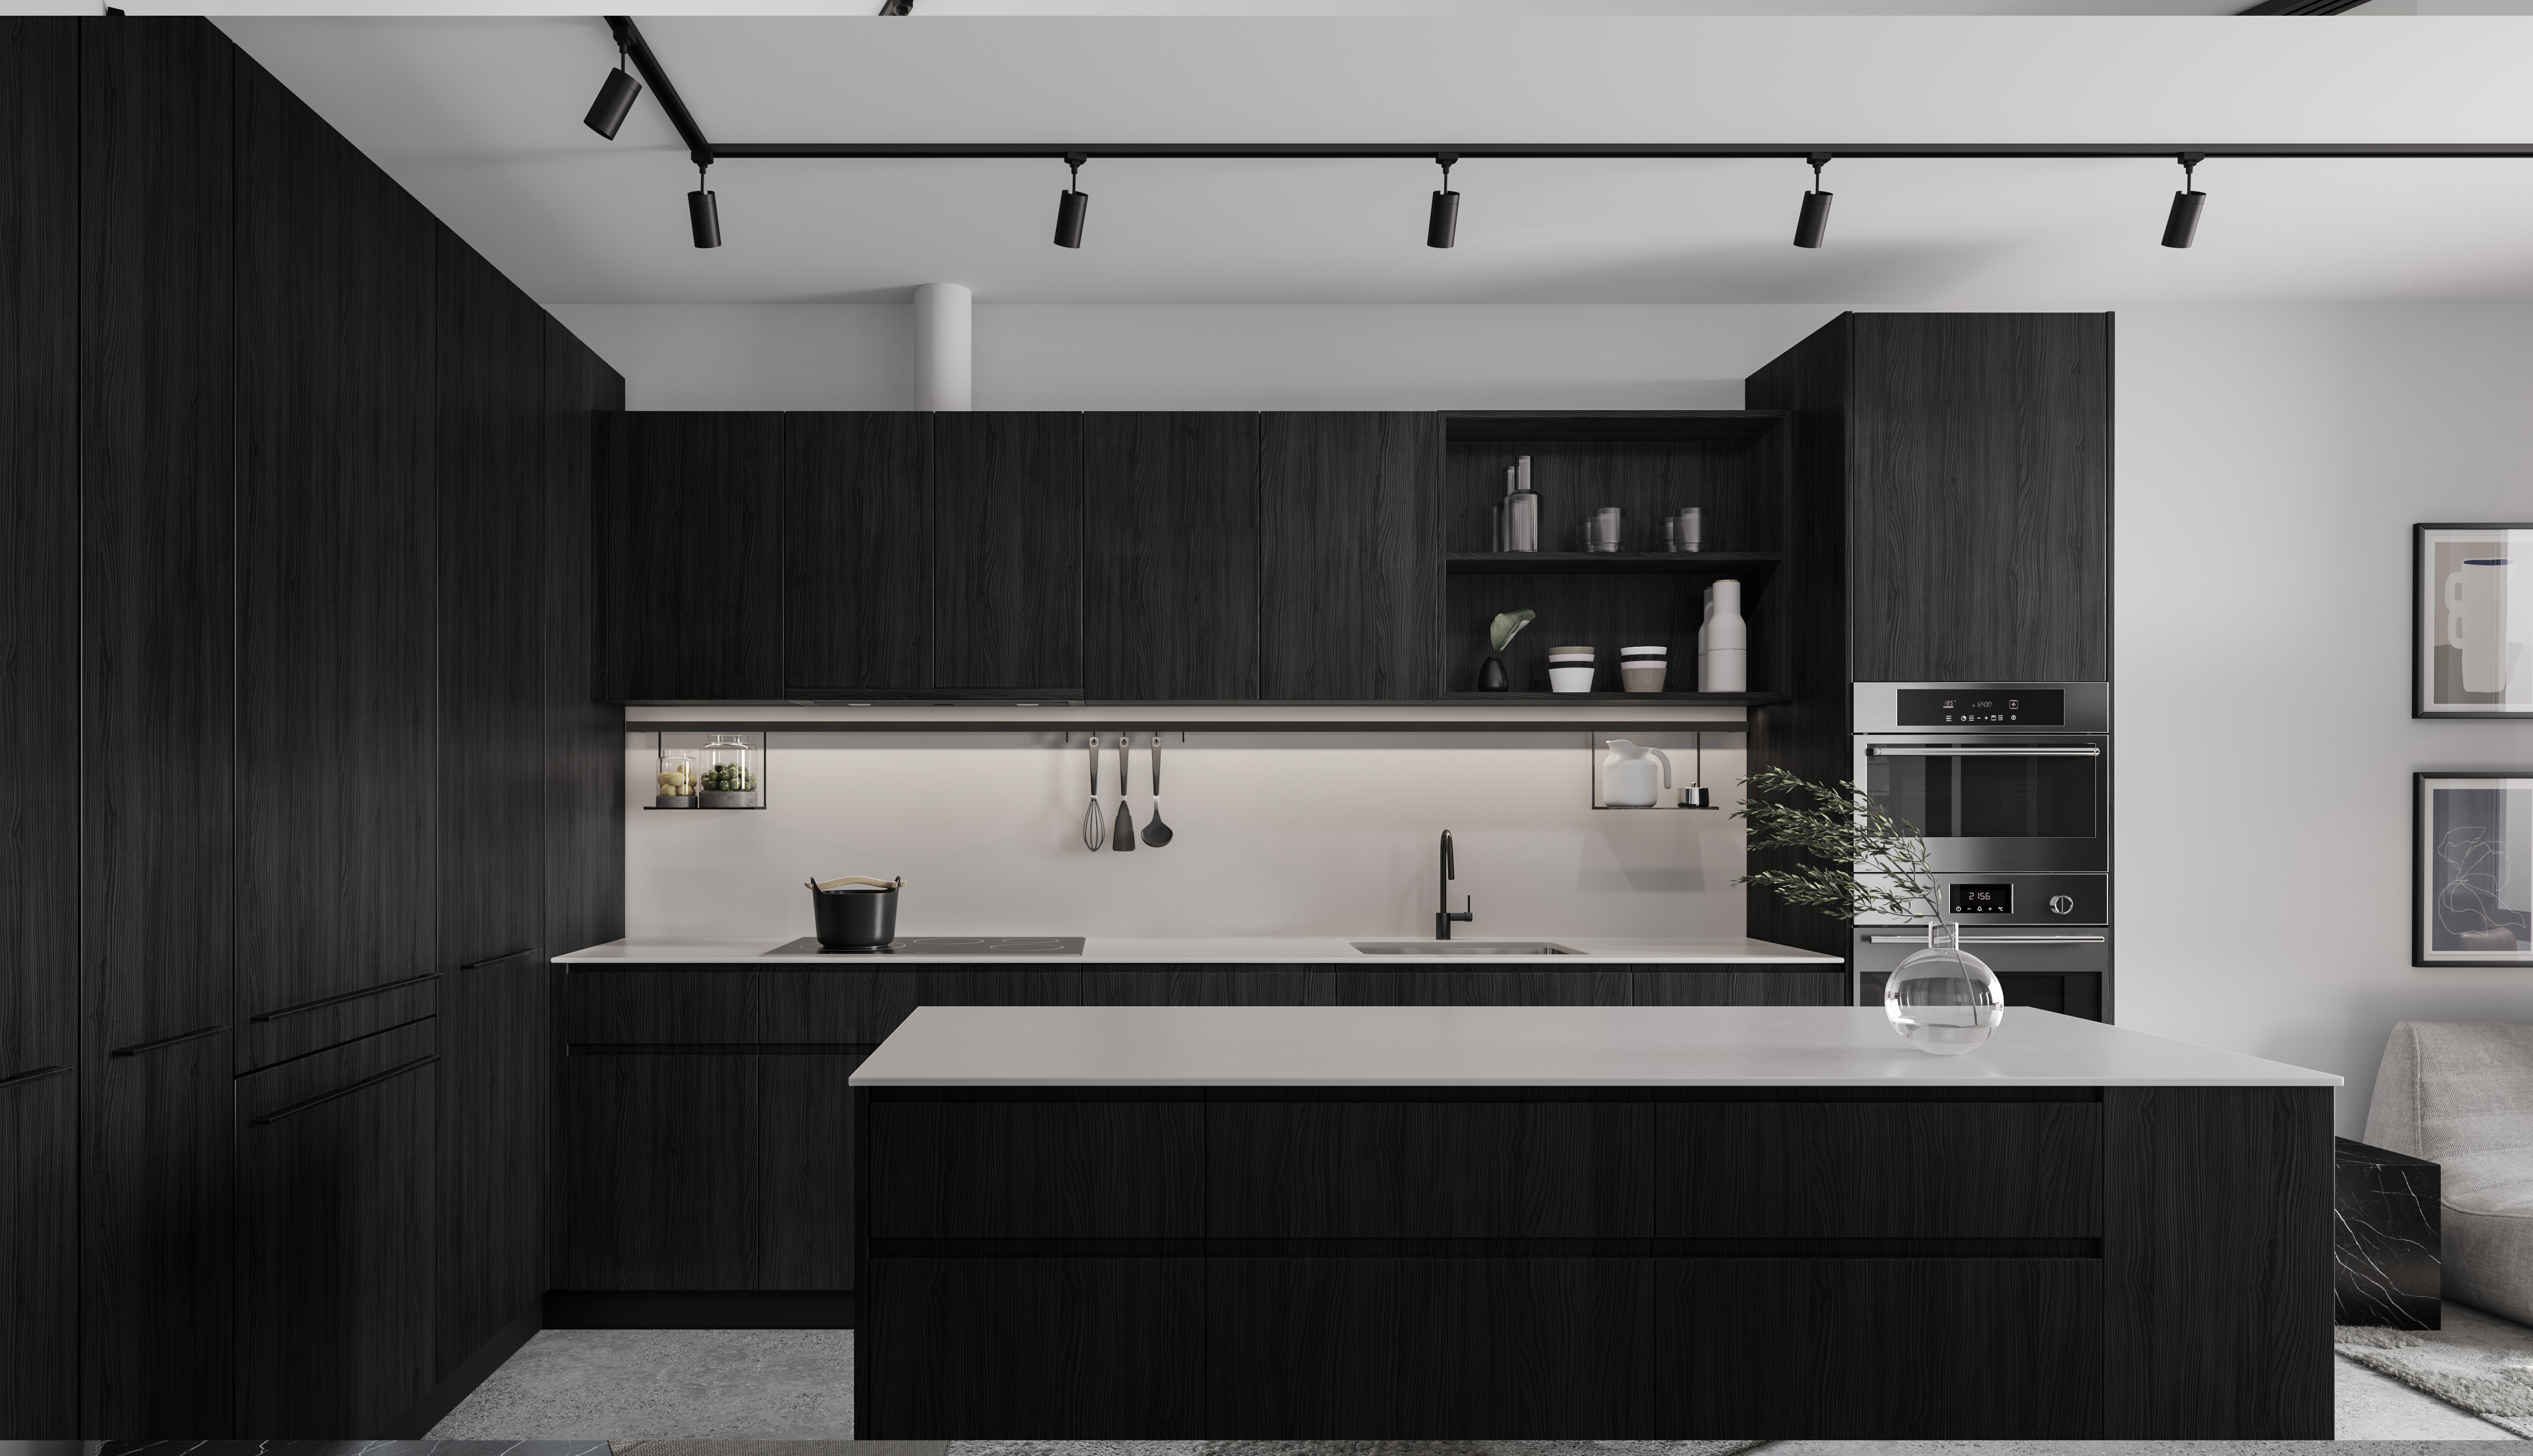 Format's Kitchen | Ste. Marie - Interior Design